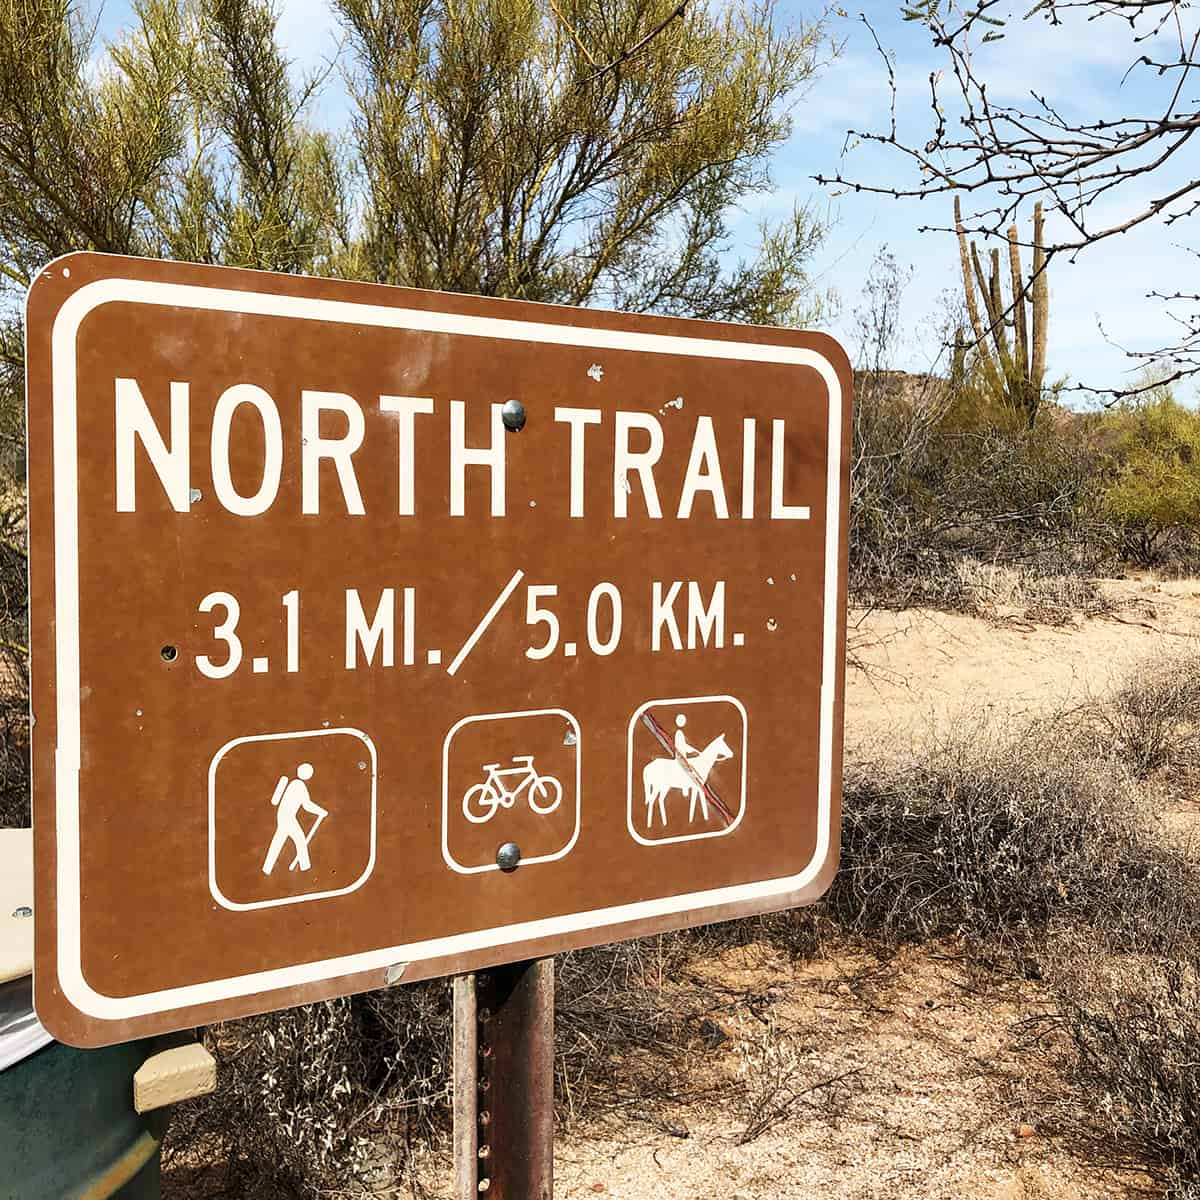 North Trail Self Guided Tour in McDowell Mountain Regional Park, Arizona